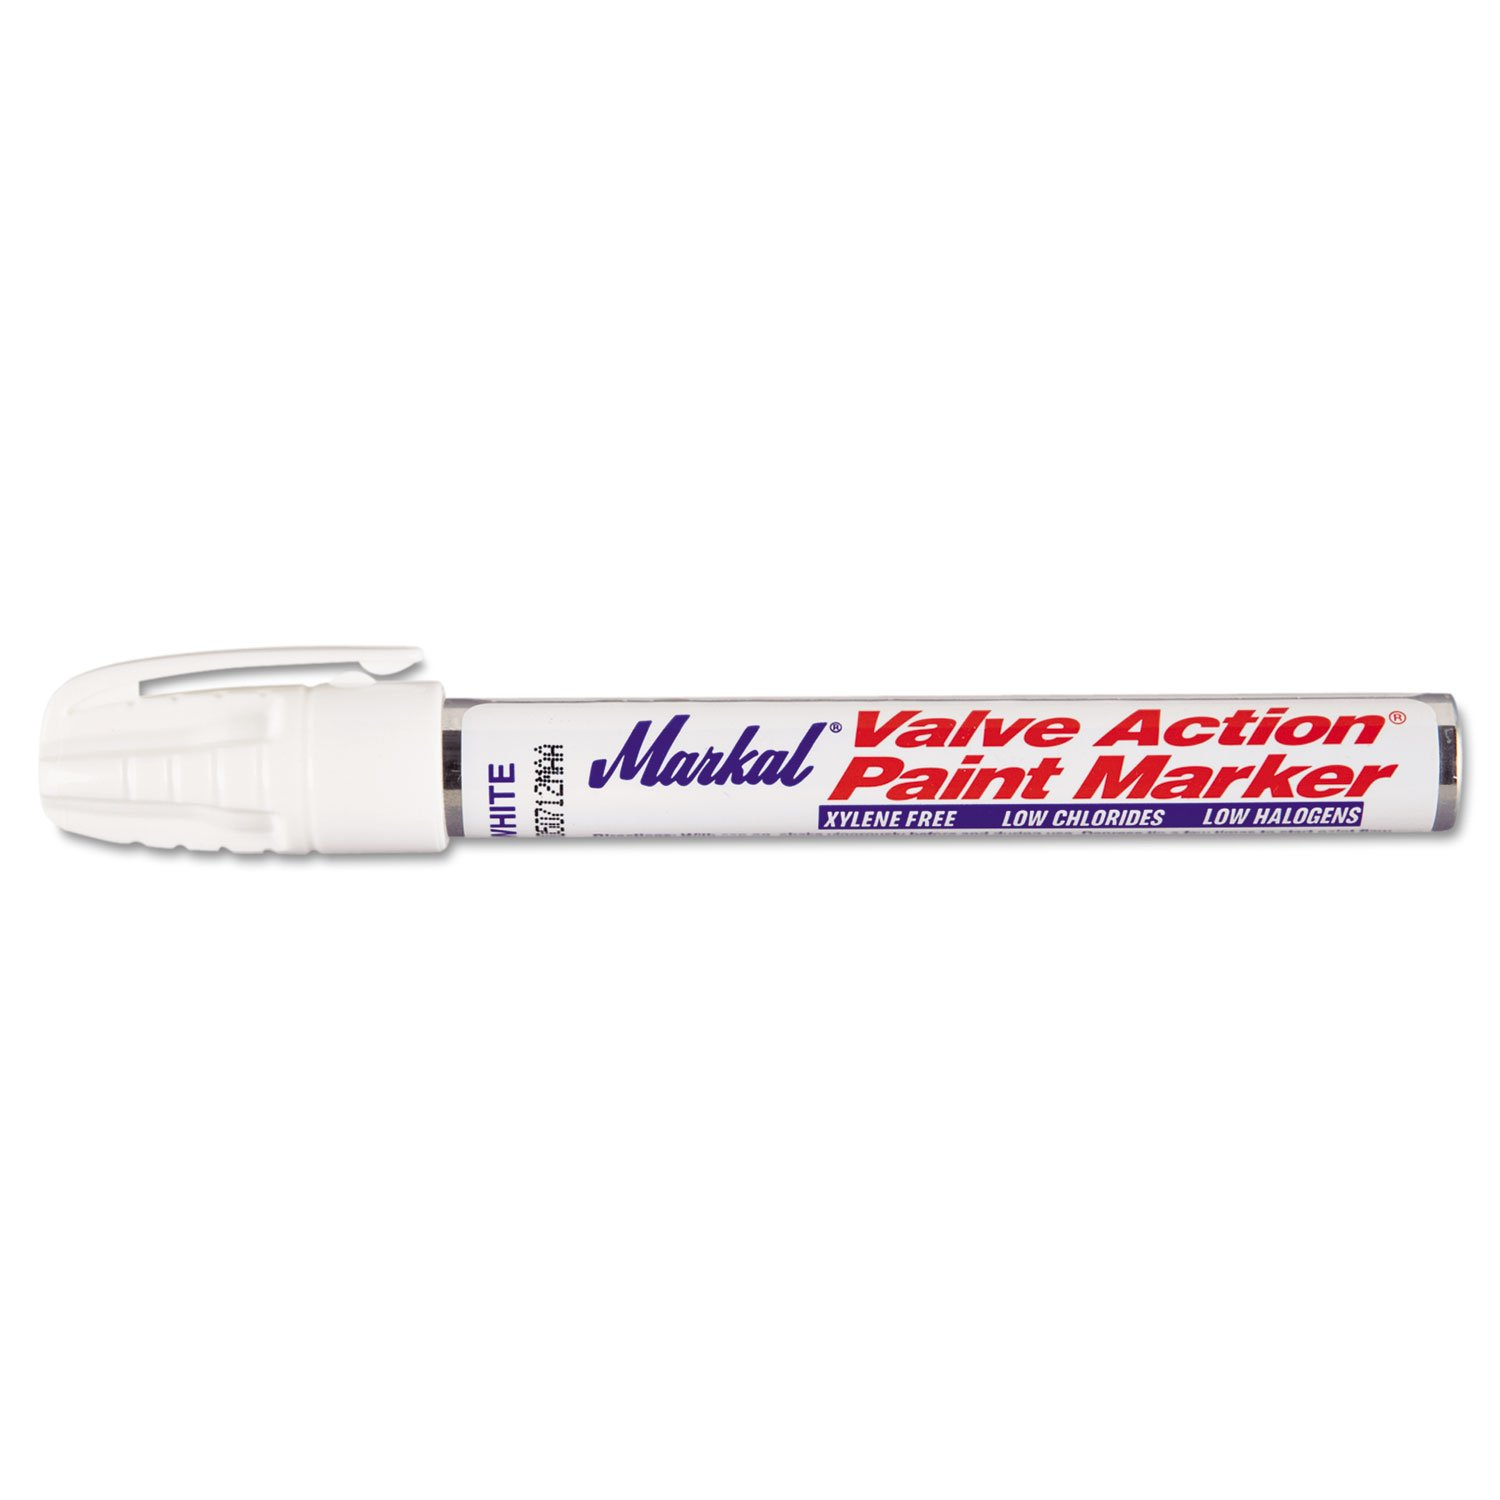 Markal Valve Action Paint Markers SEPTLS43497050 97050